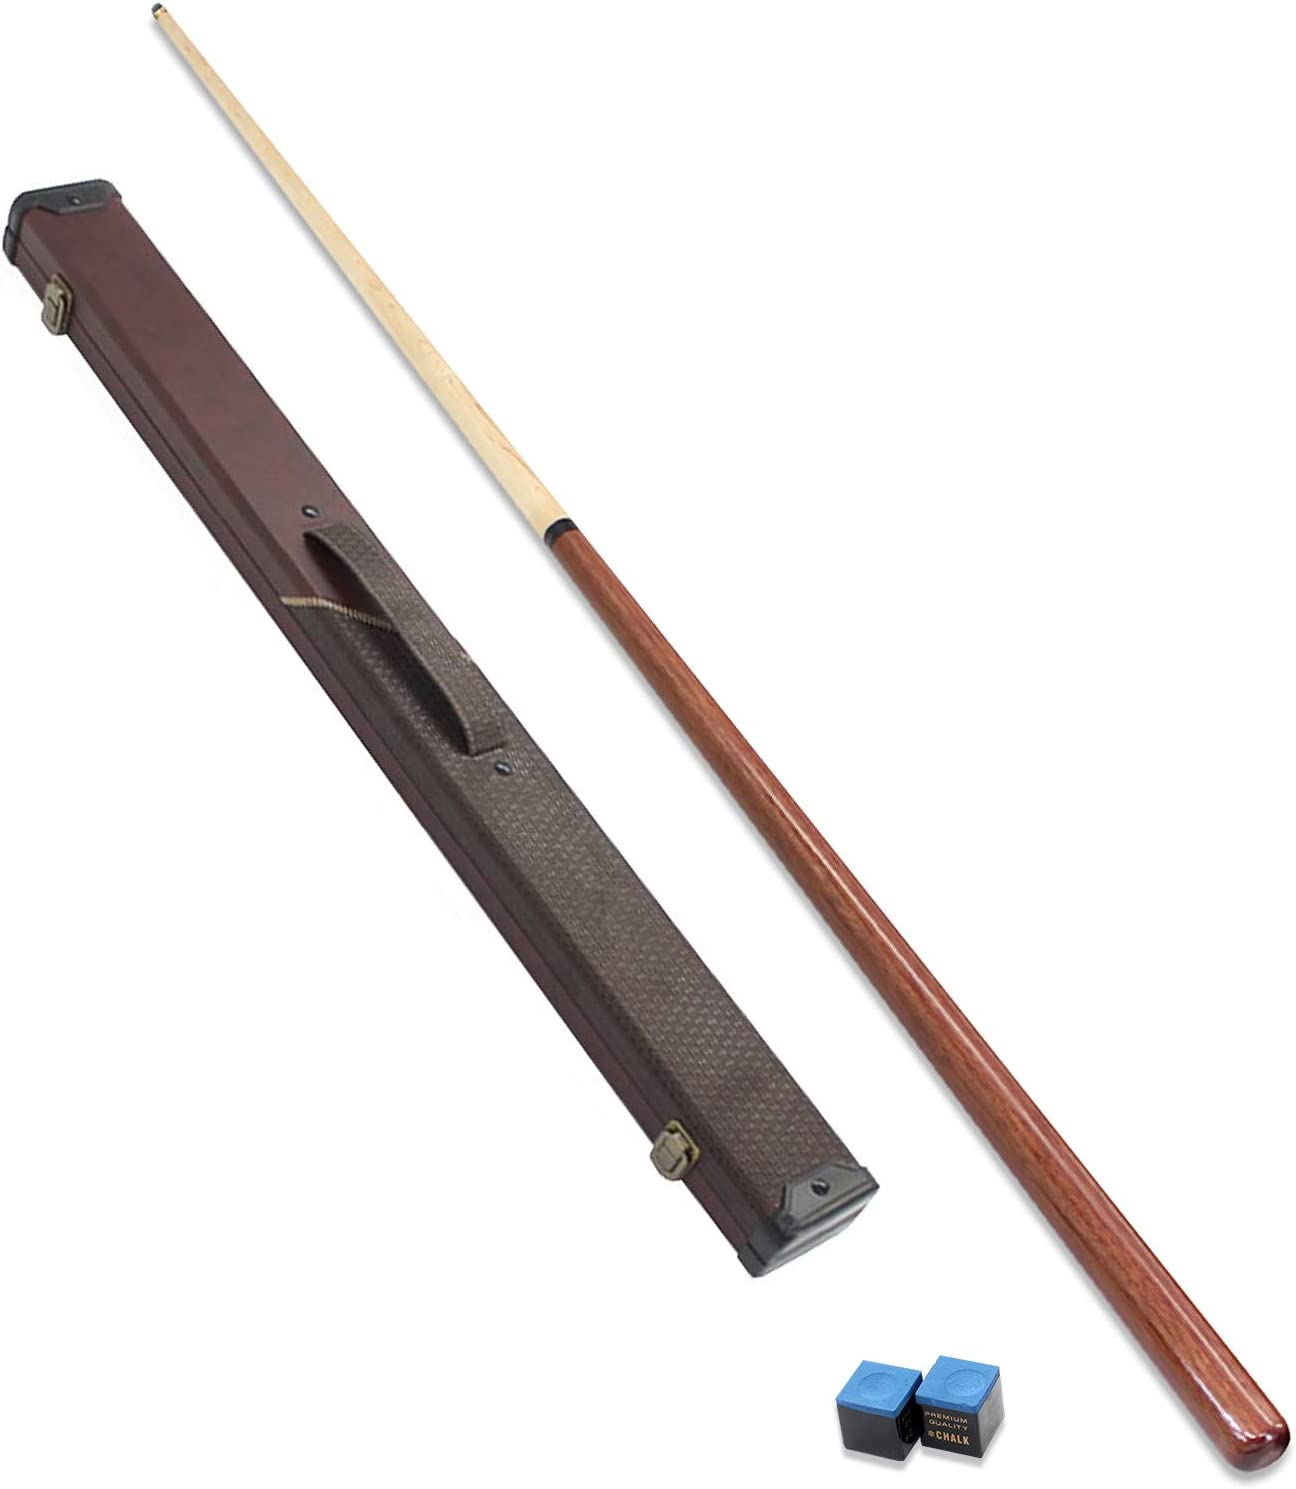 XYNH 1-Pieces Pool Cue for Kids 1 51 Jointed price Bi Snooker 2 2021 model Inches